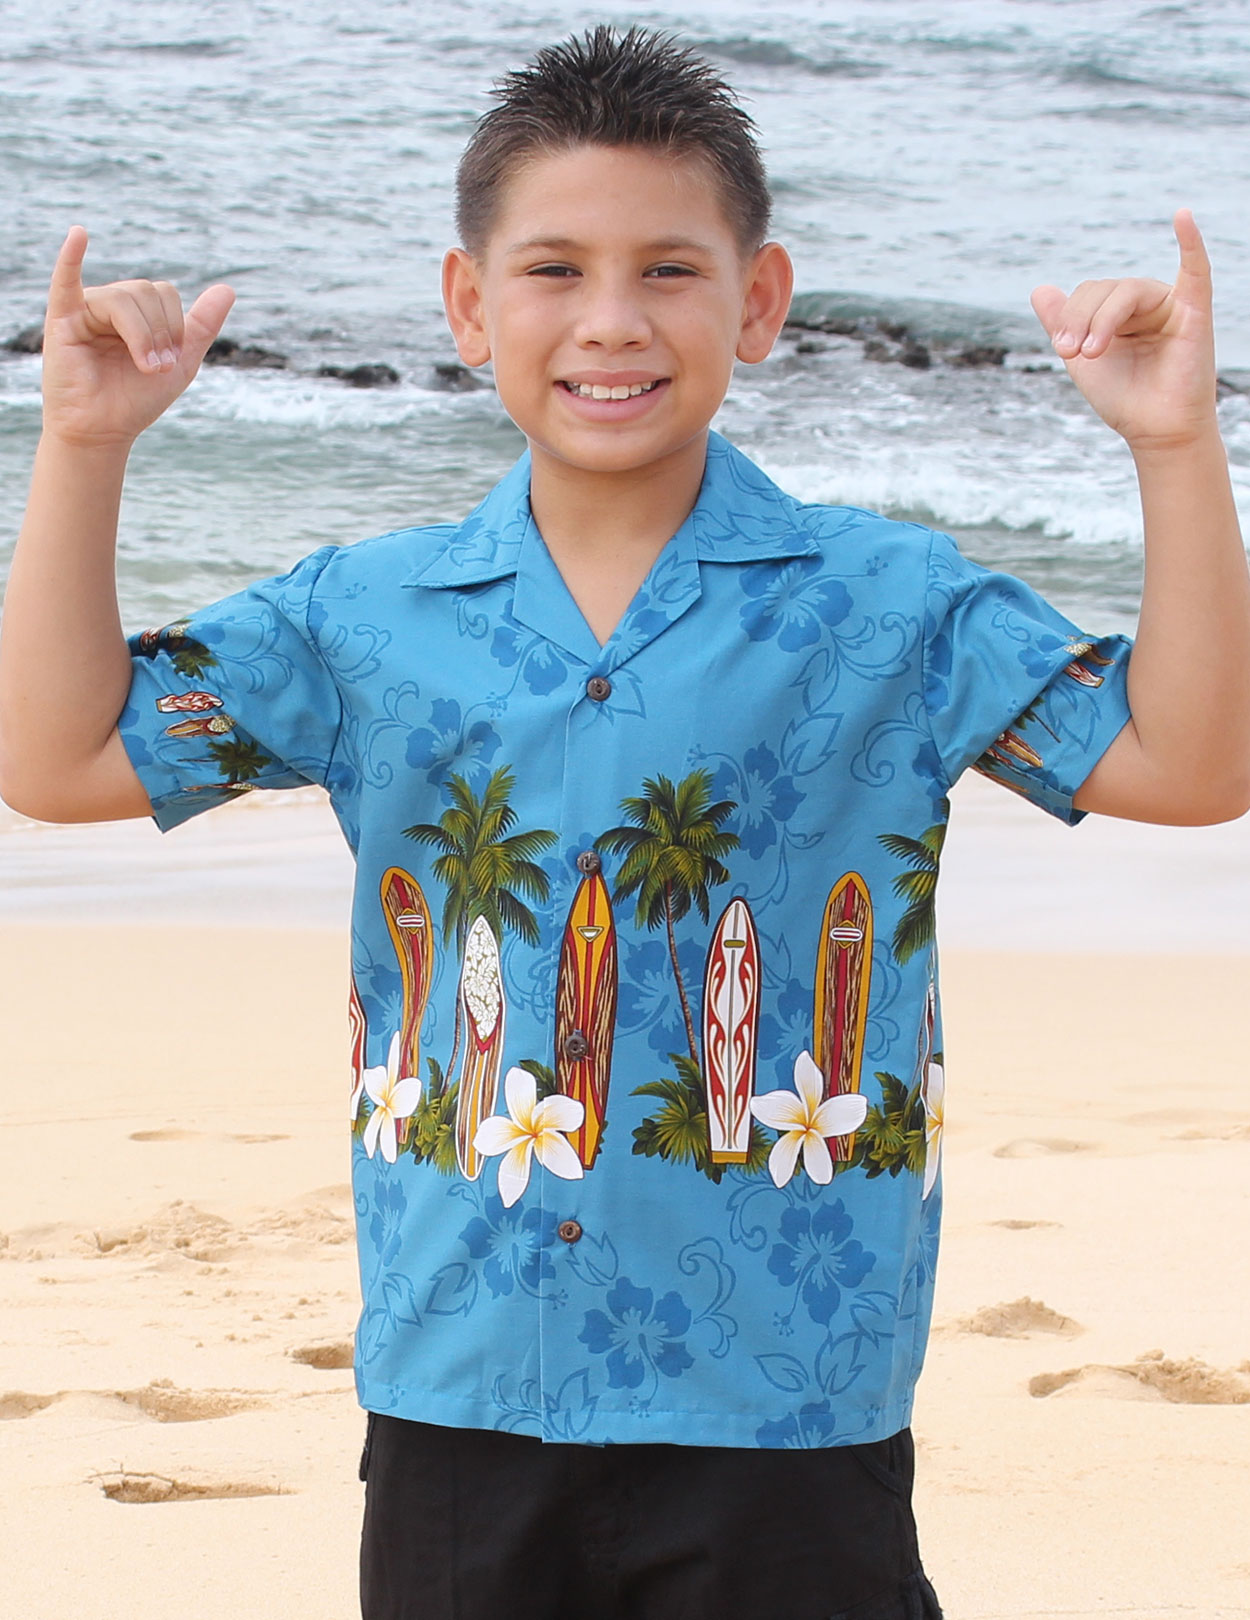 Surfing Classic Boards Boys Aloha Shirt Shaka Time Hawaii Clothing Store